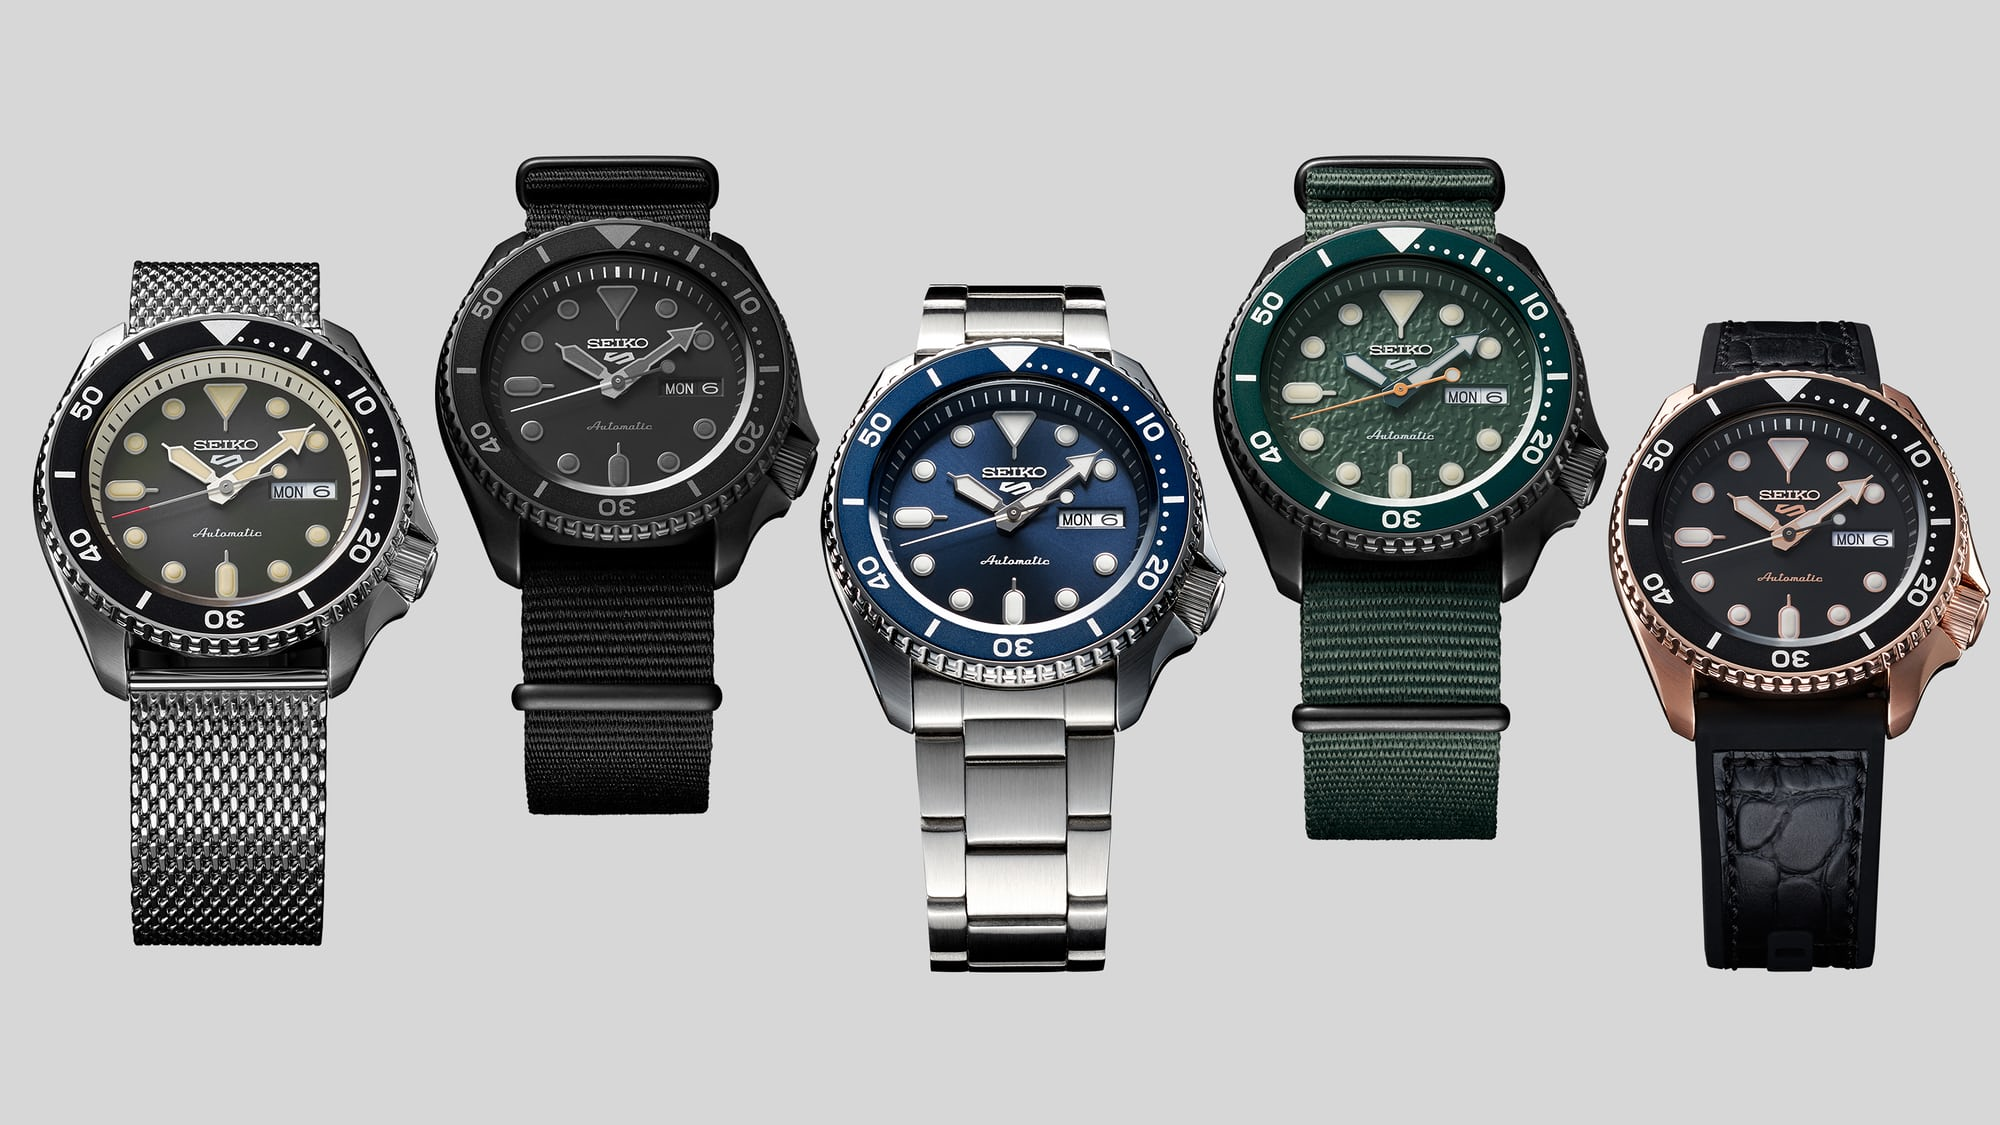 Introducing: The New Seiko 5 Sports Watches